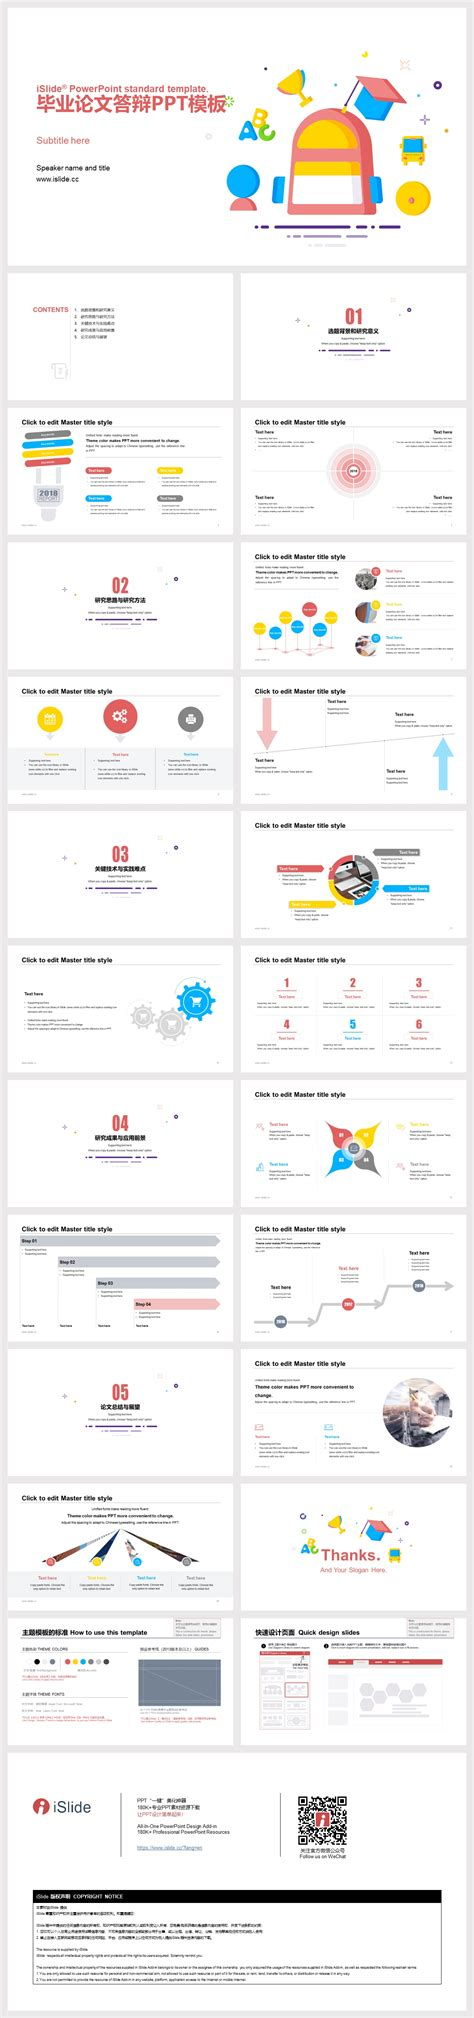 thesis defense presentation template ppt phd dissertation defense presentation template just free